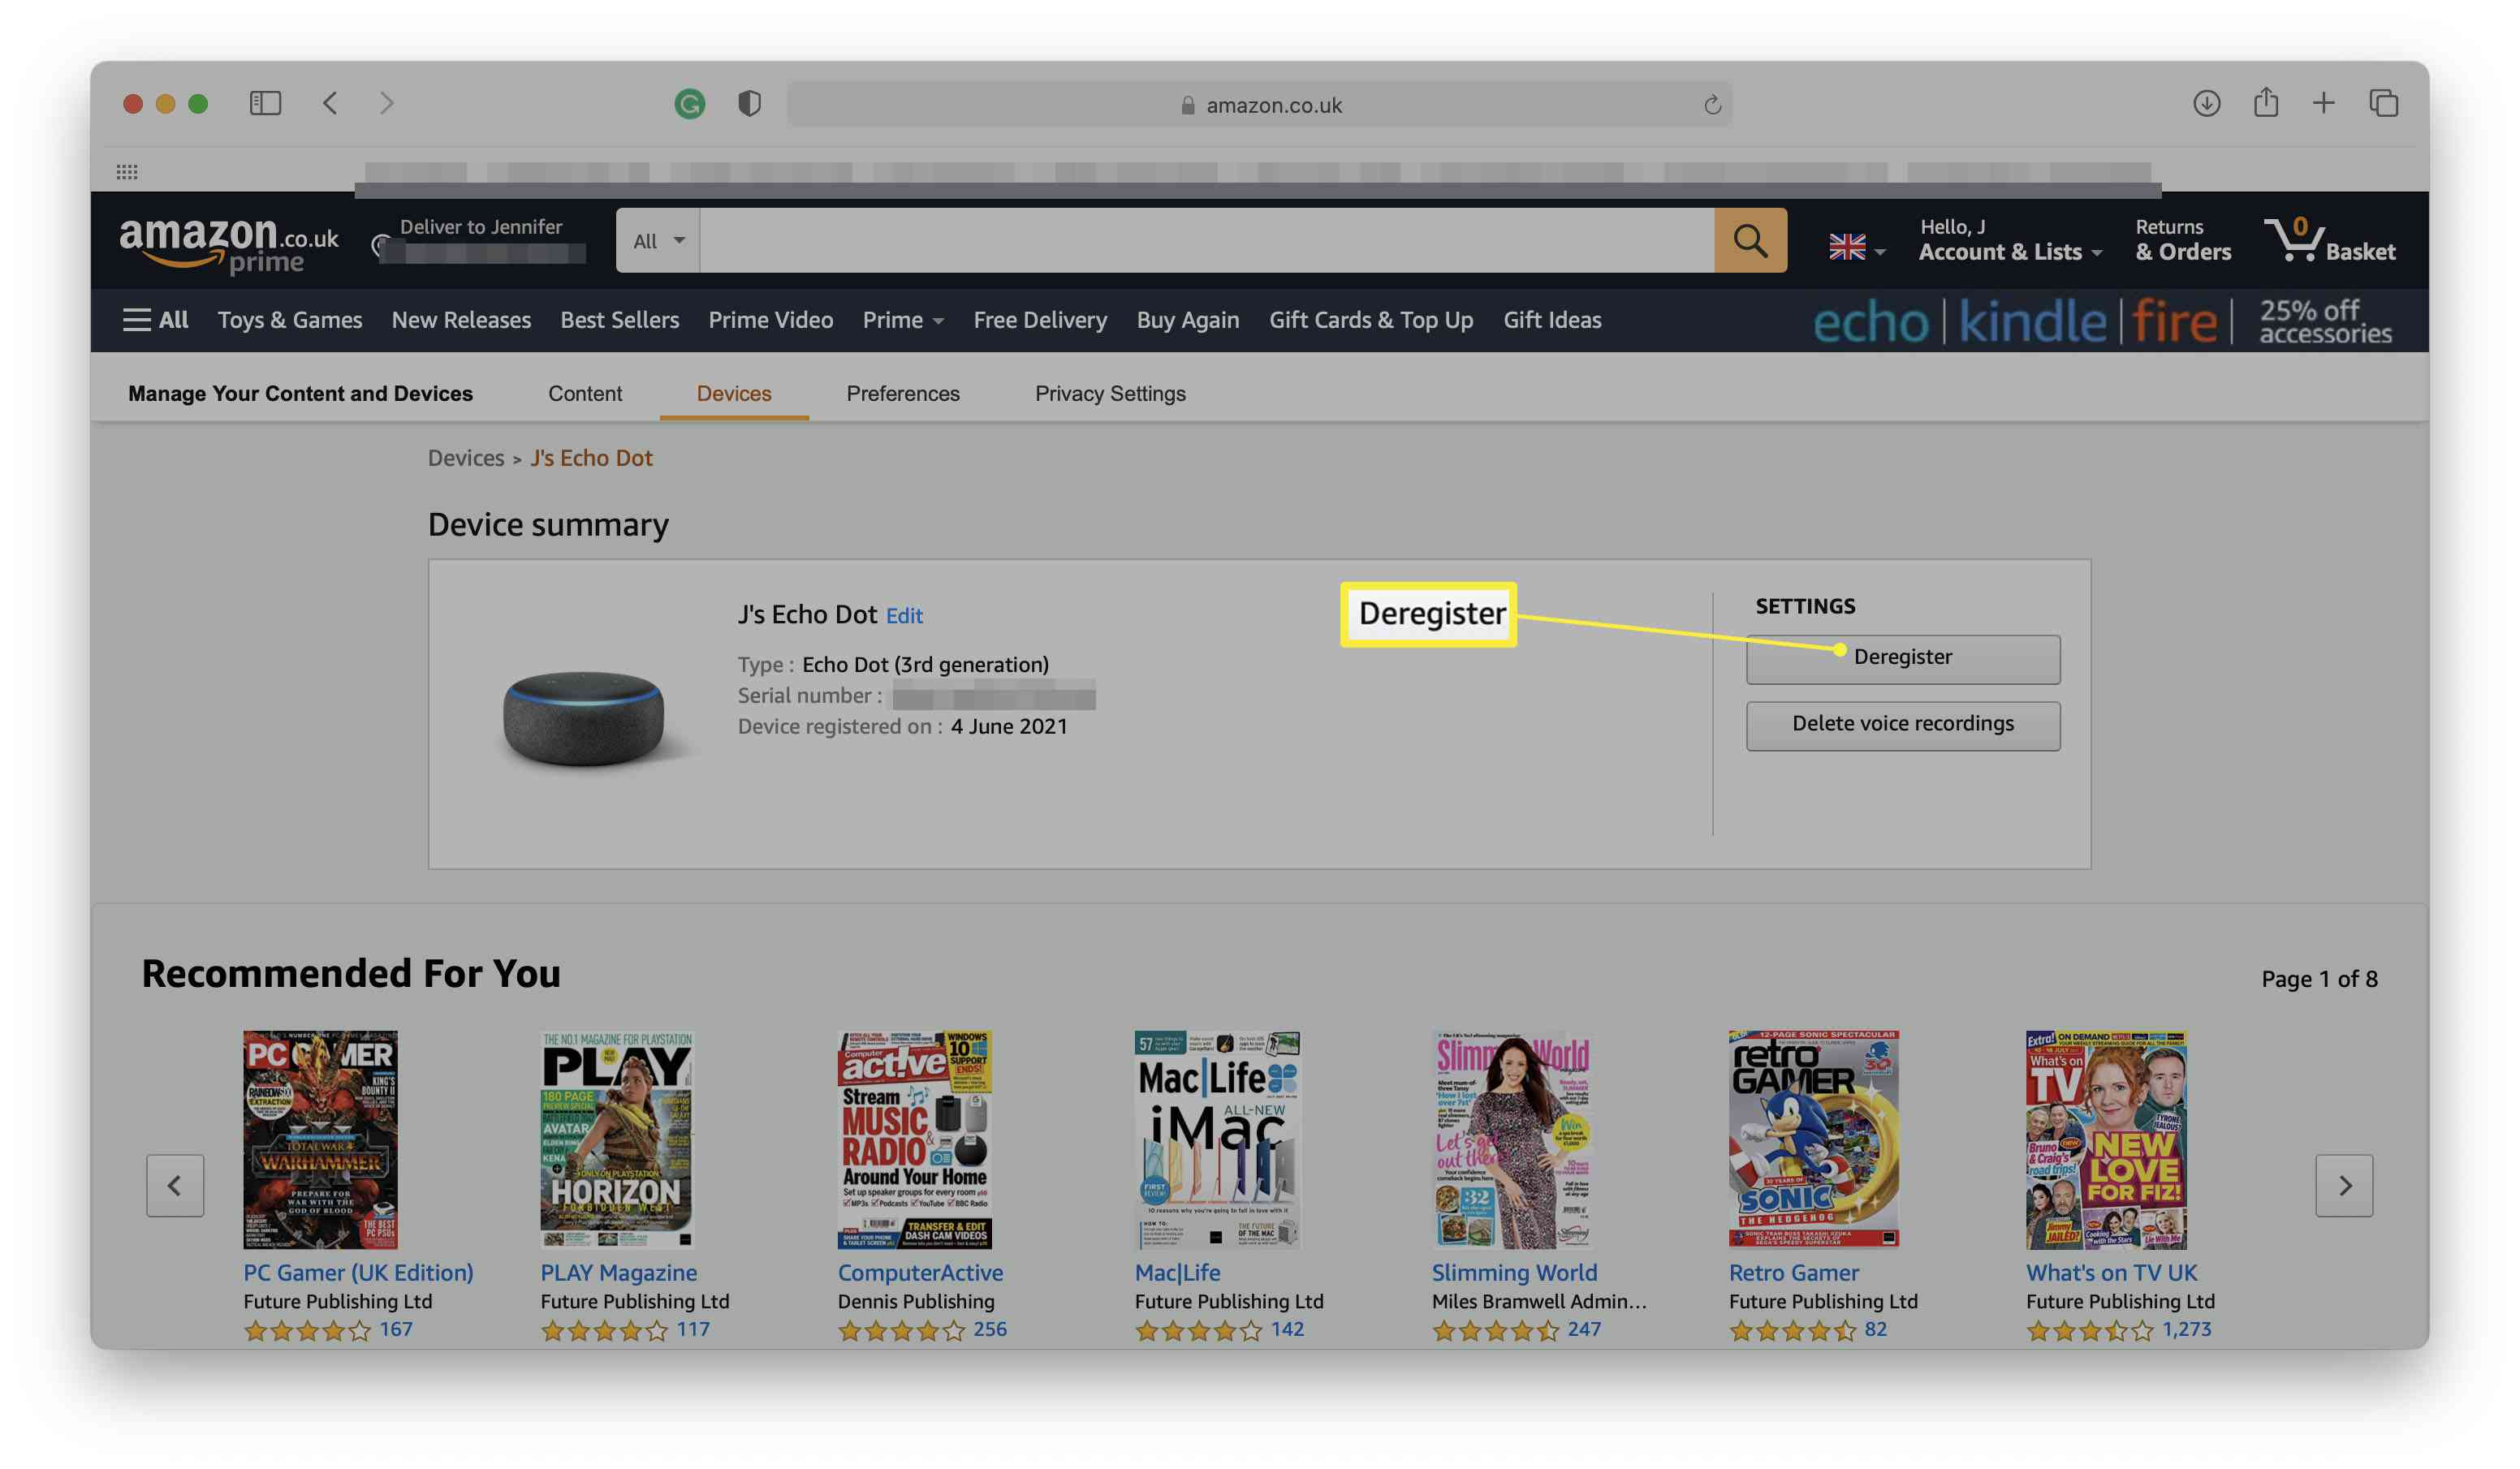 Amazon website with Echo speaker showing and Deregister highlighted